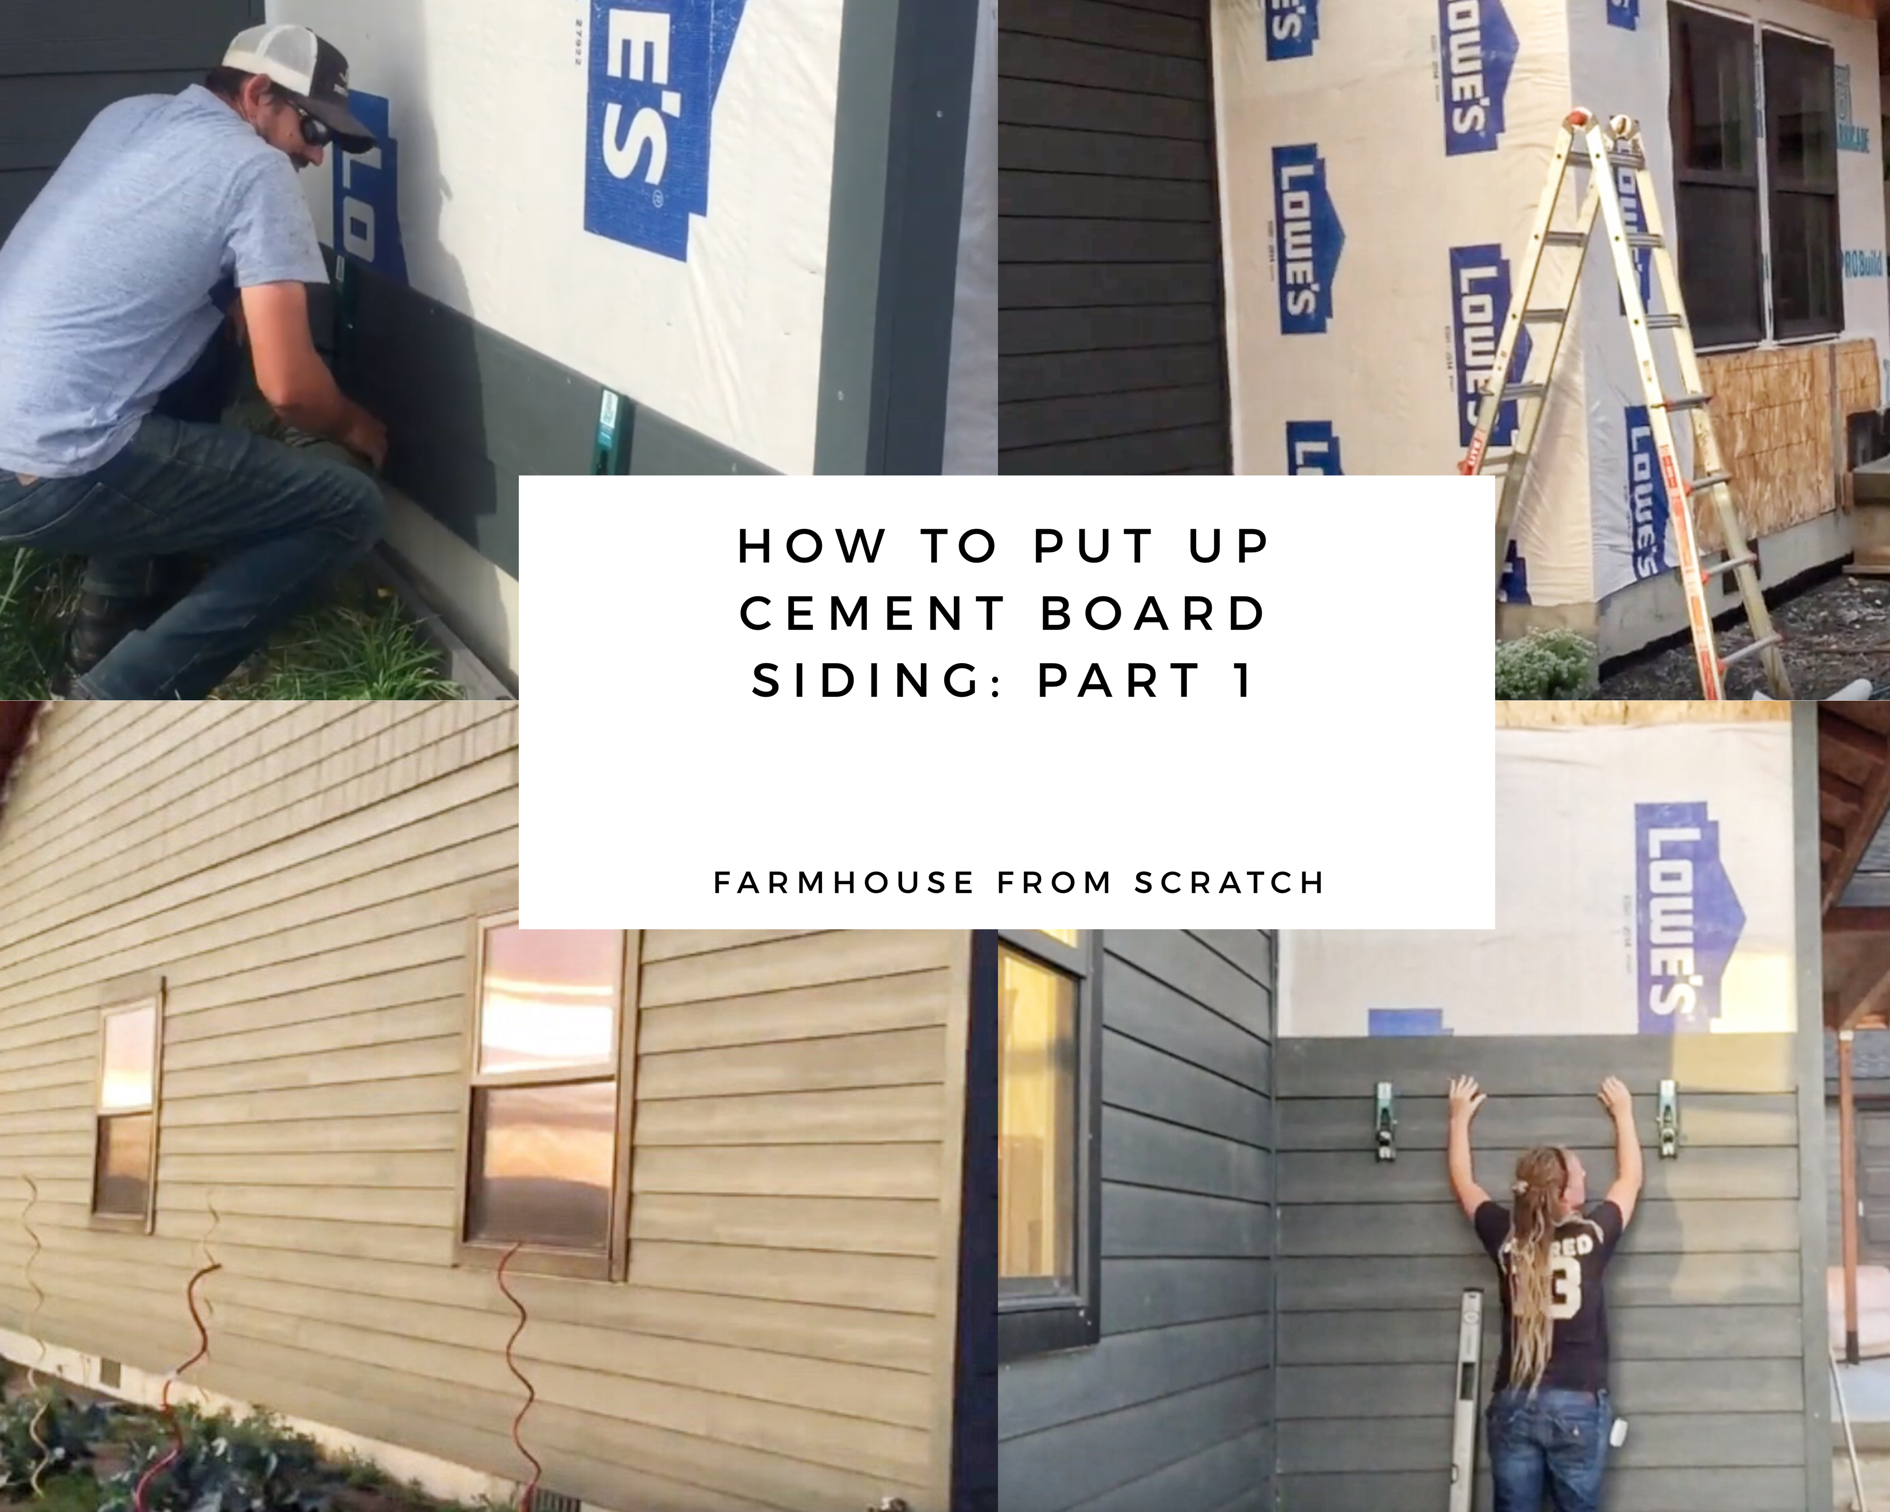 How To Put Up Cement Board Siding Part 1 Owner Builder Tips Cement Board Siding Siding Build Your Own House